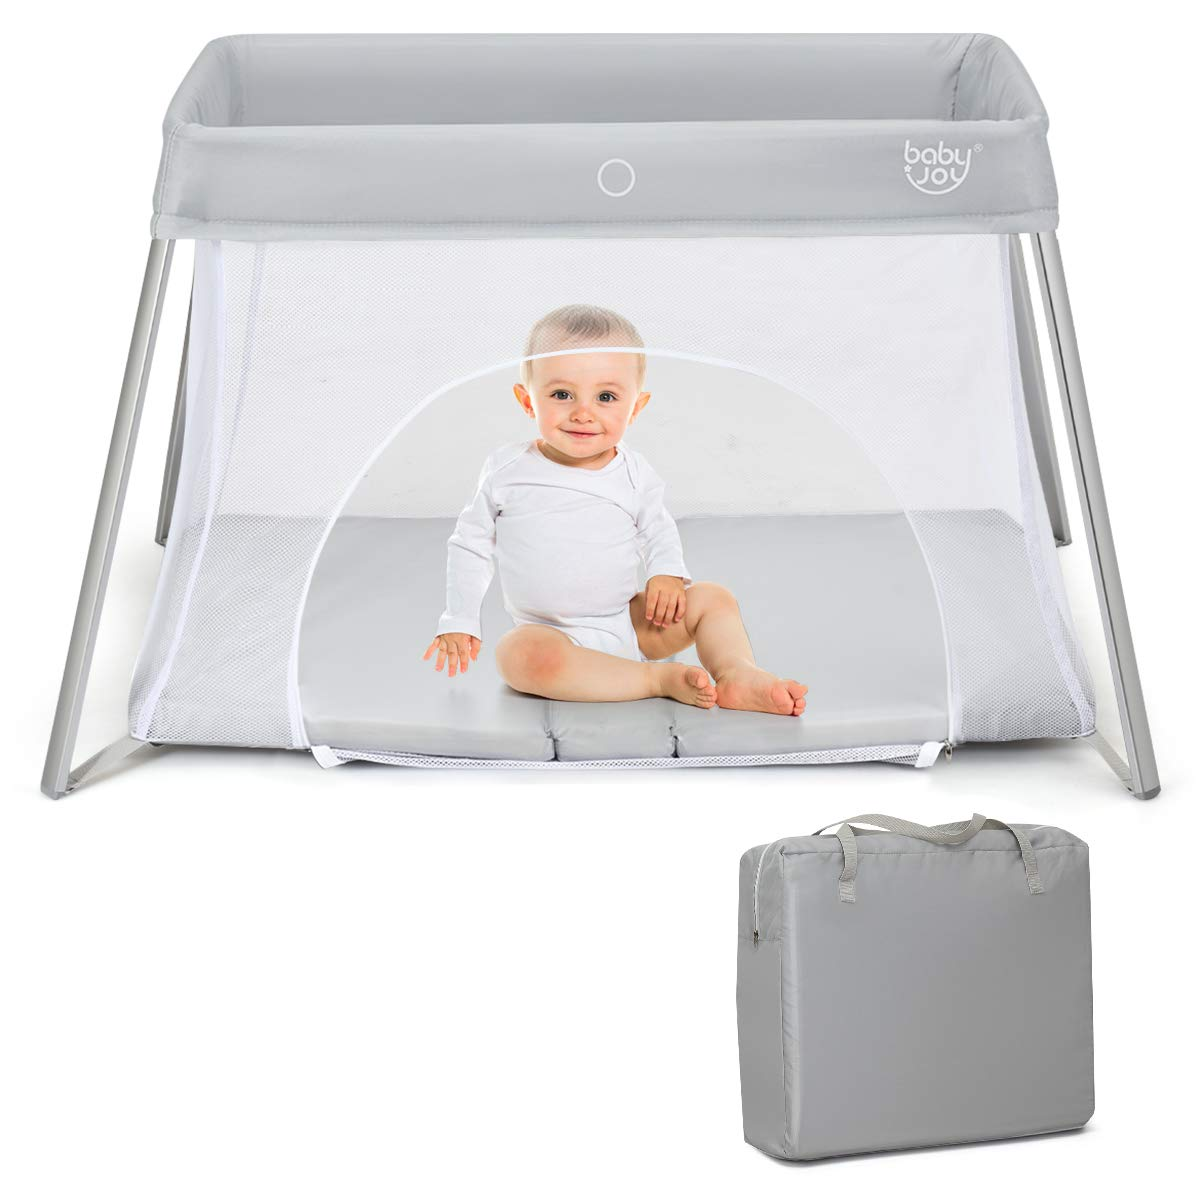 BABY JOY Baby Foldable Travel Crib, 2 in 1 Portable Playpen with Soft Washable Mattress, Side Zipper Design, Lightweight Installation-Free Home Playard with Carry Bag, for Infants & Toddlers (Sliver)